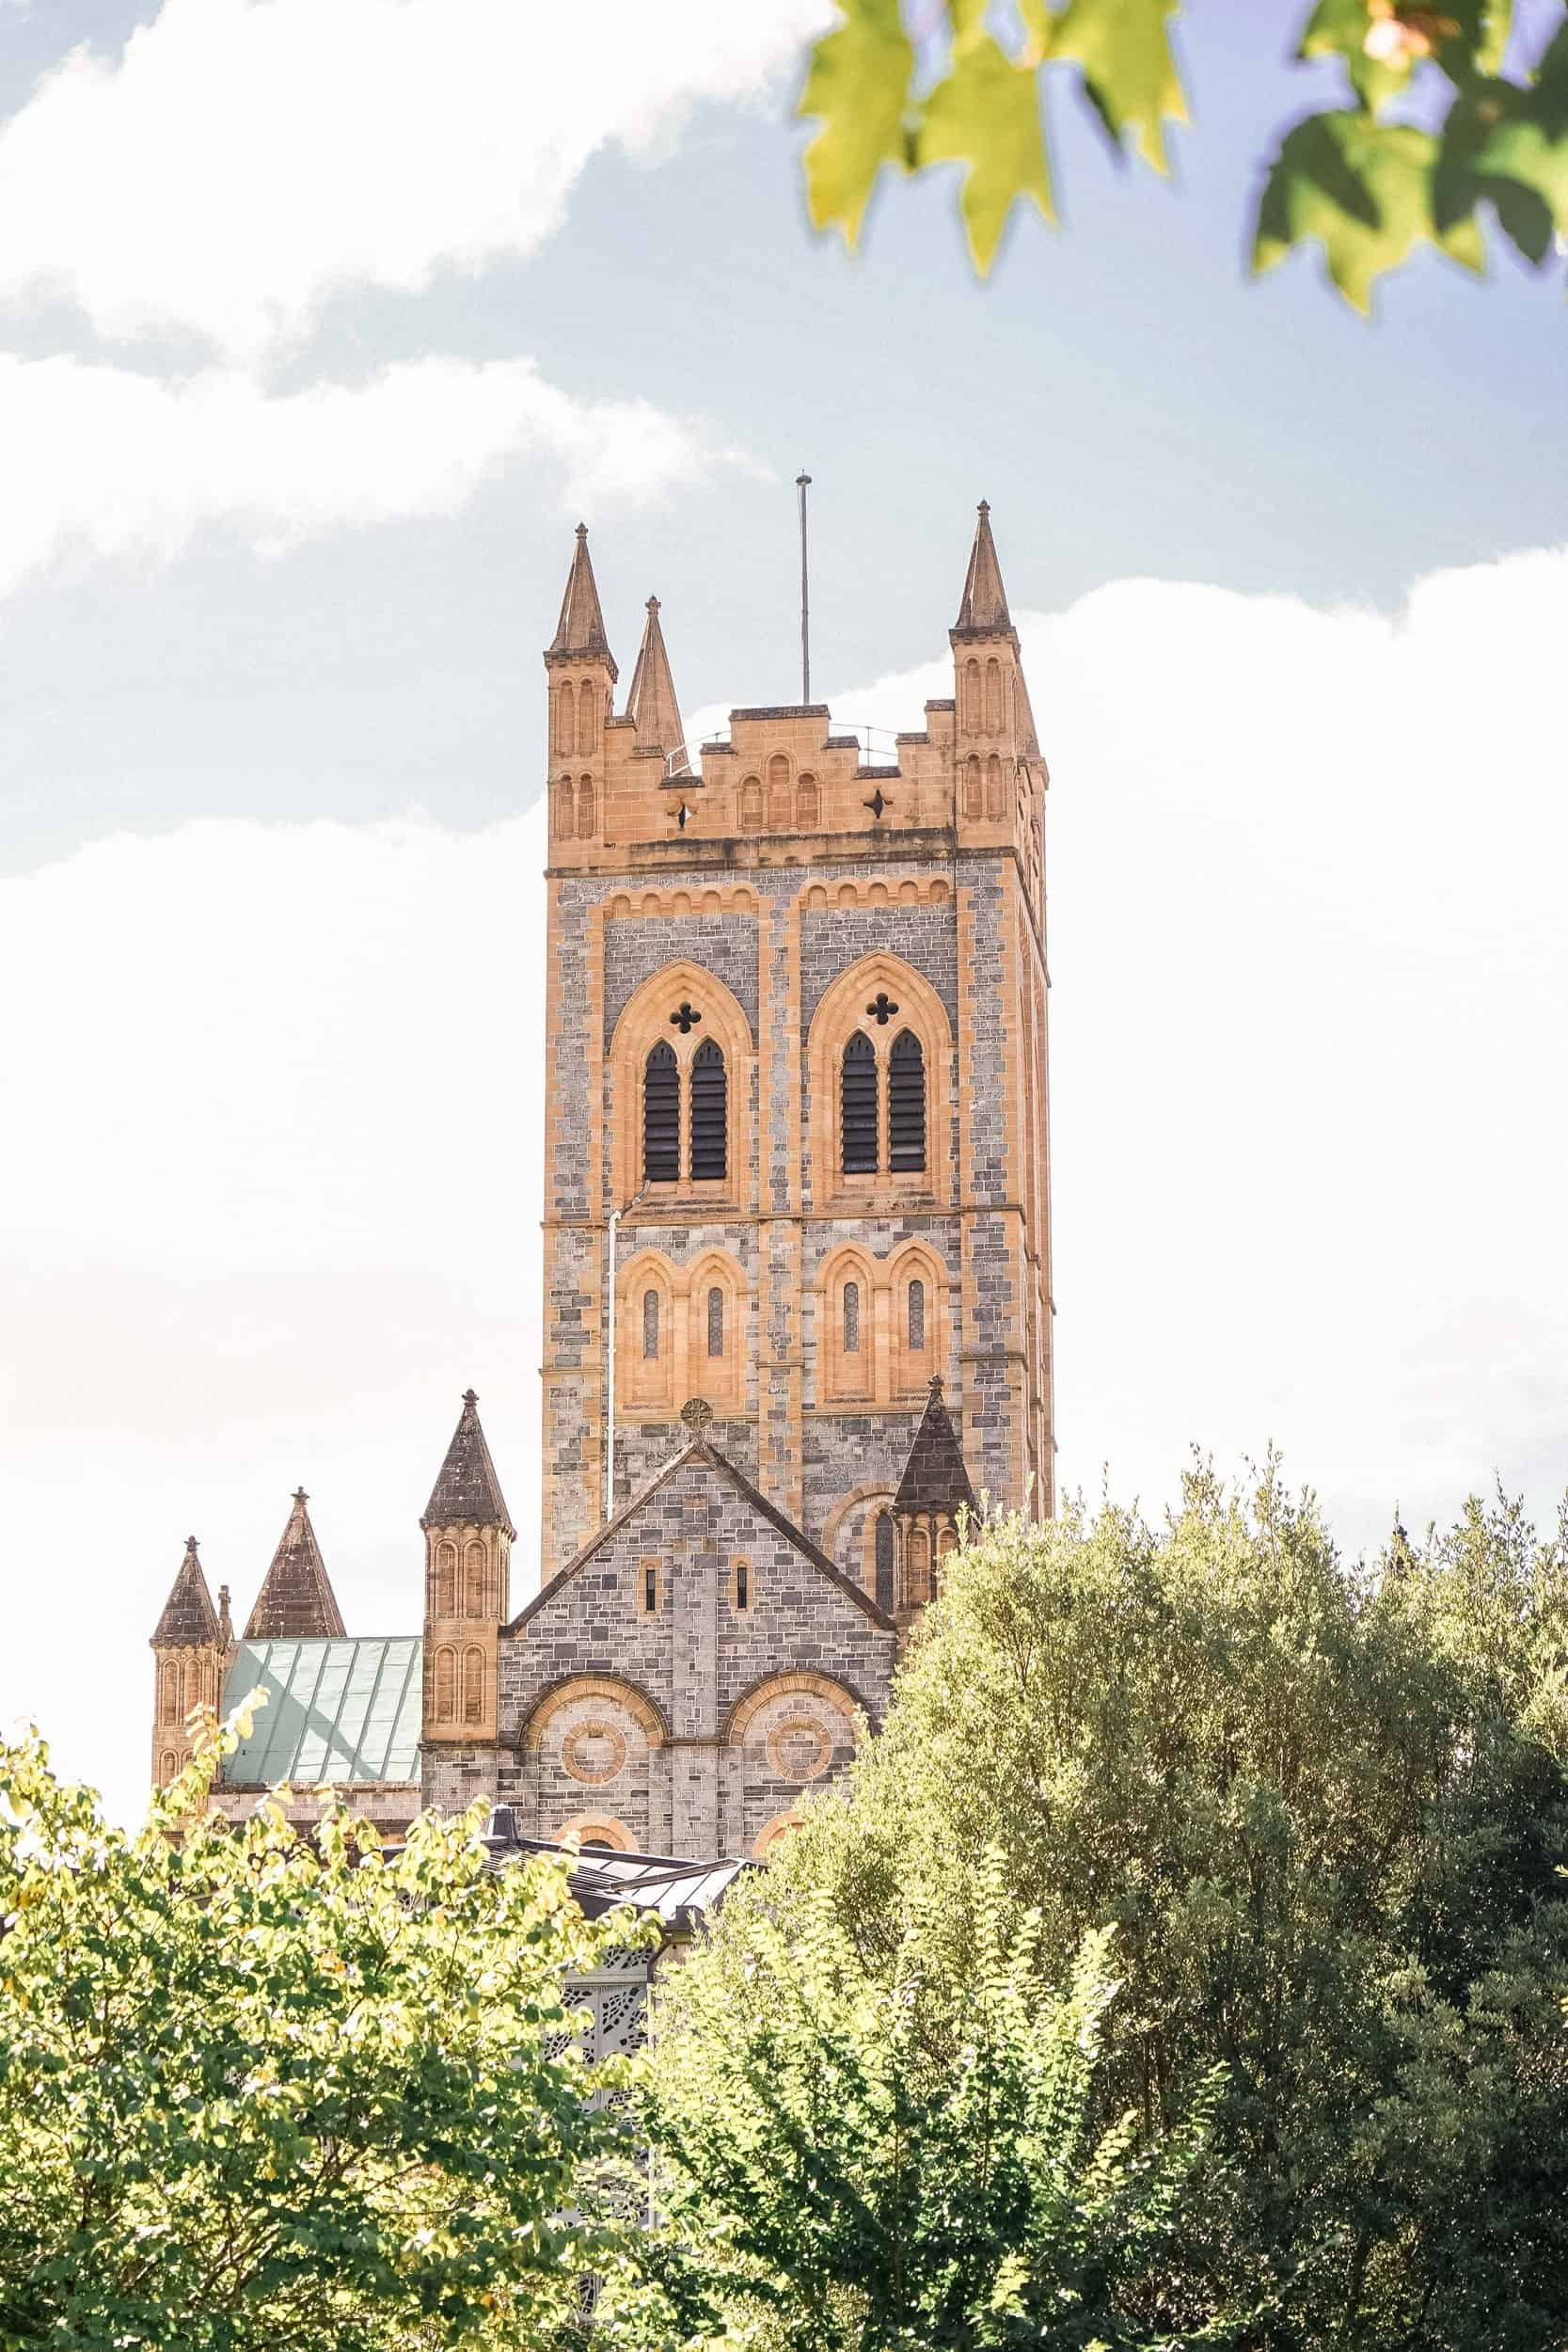 Buckfast Abbey Tower, near Ashburton, Devon, England